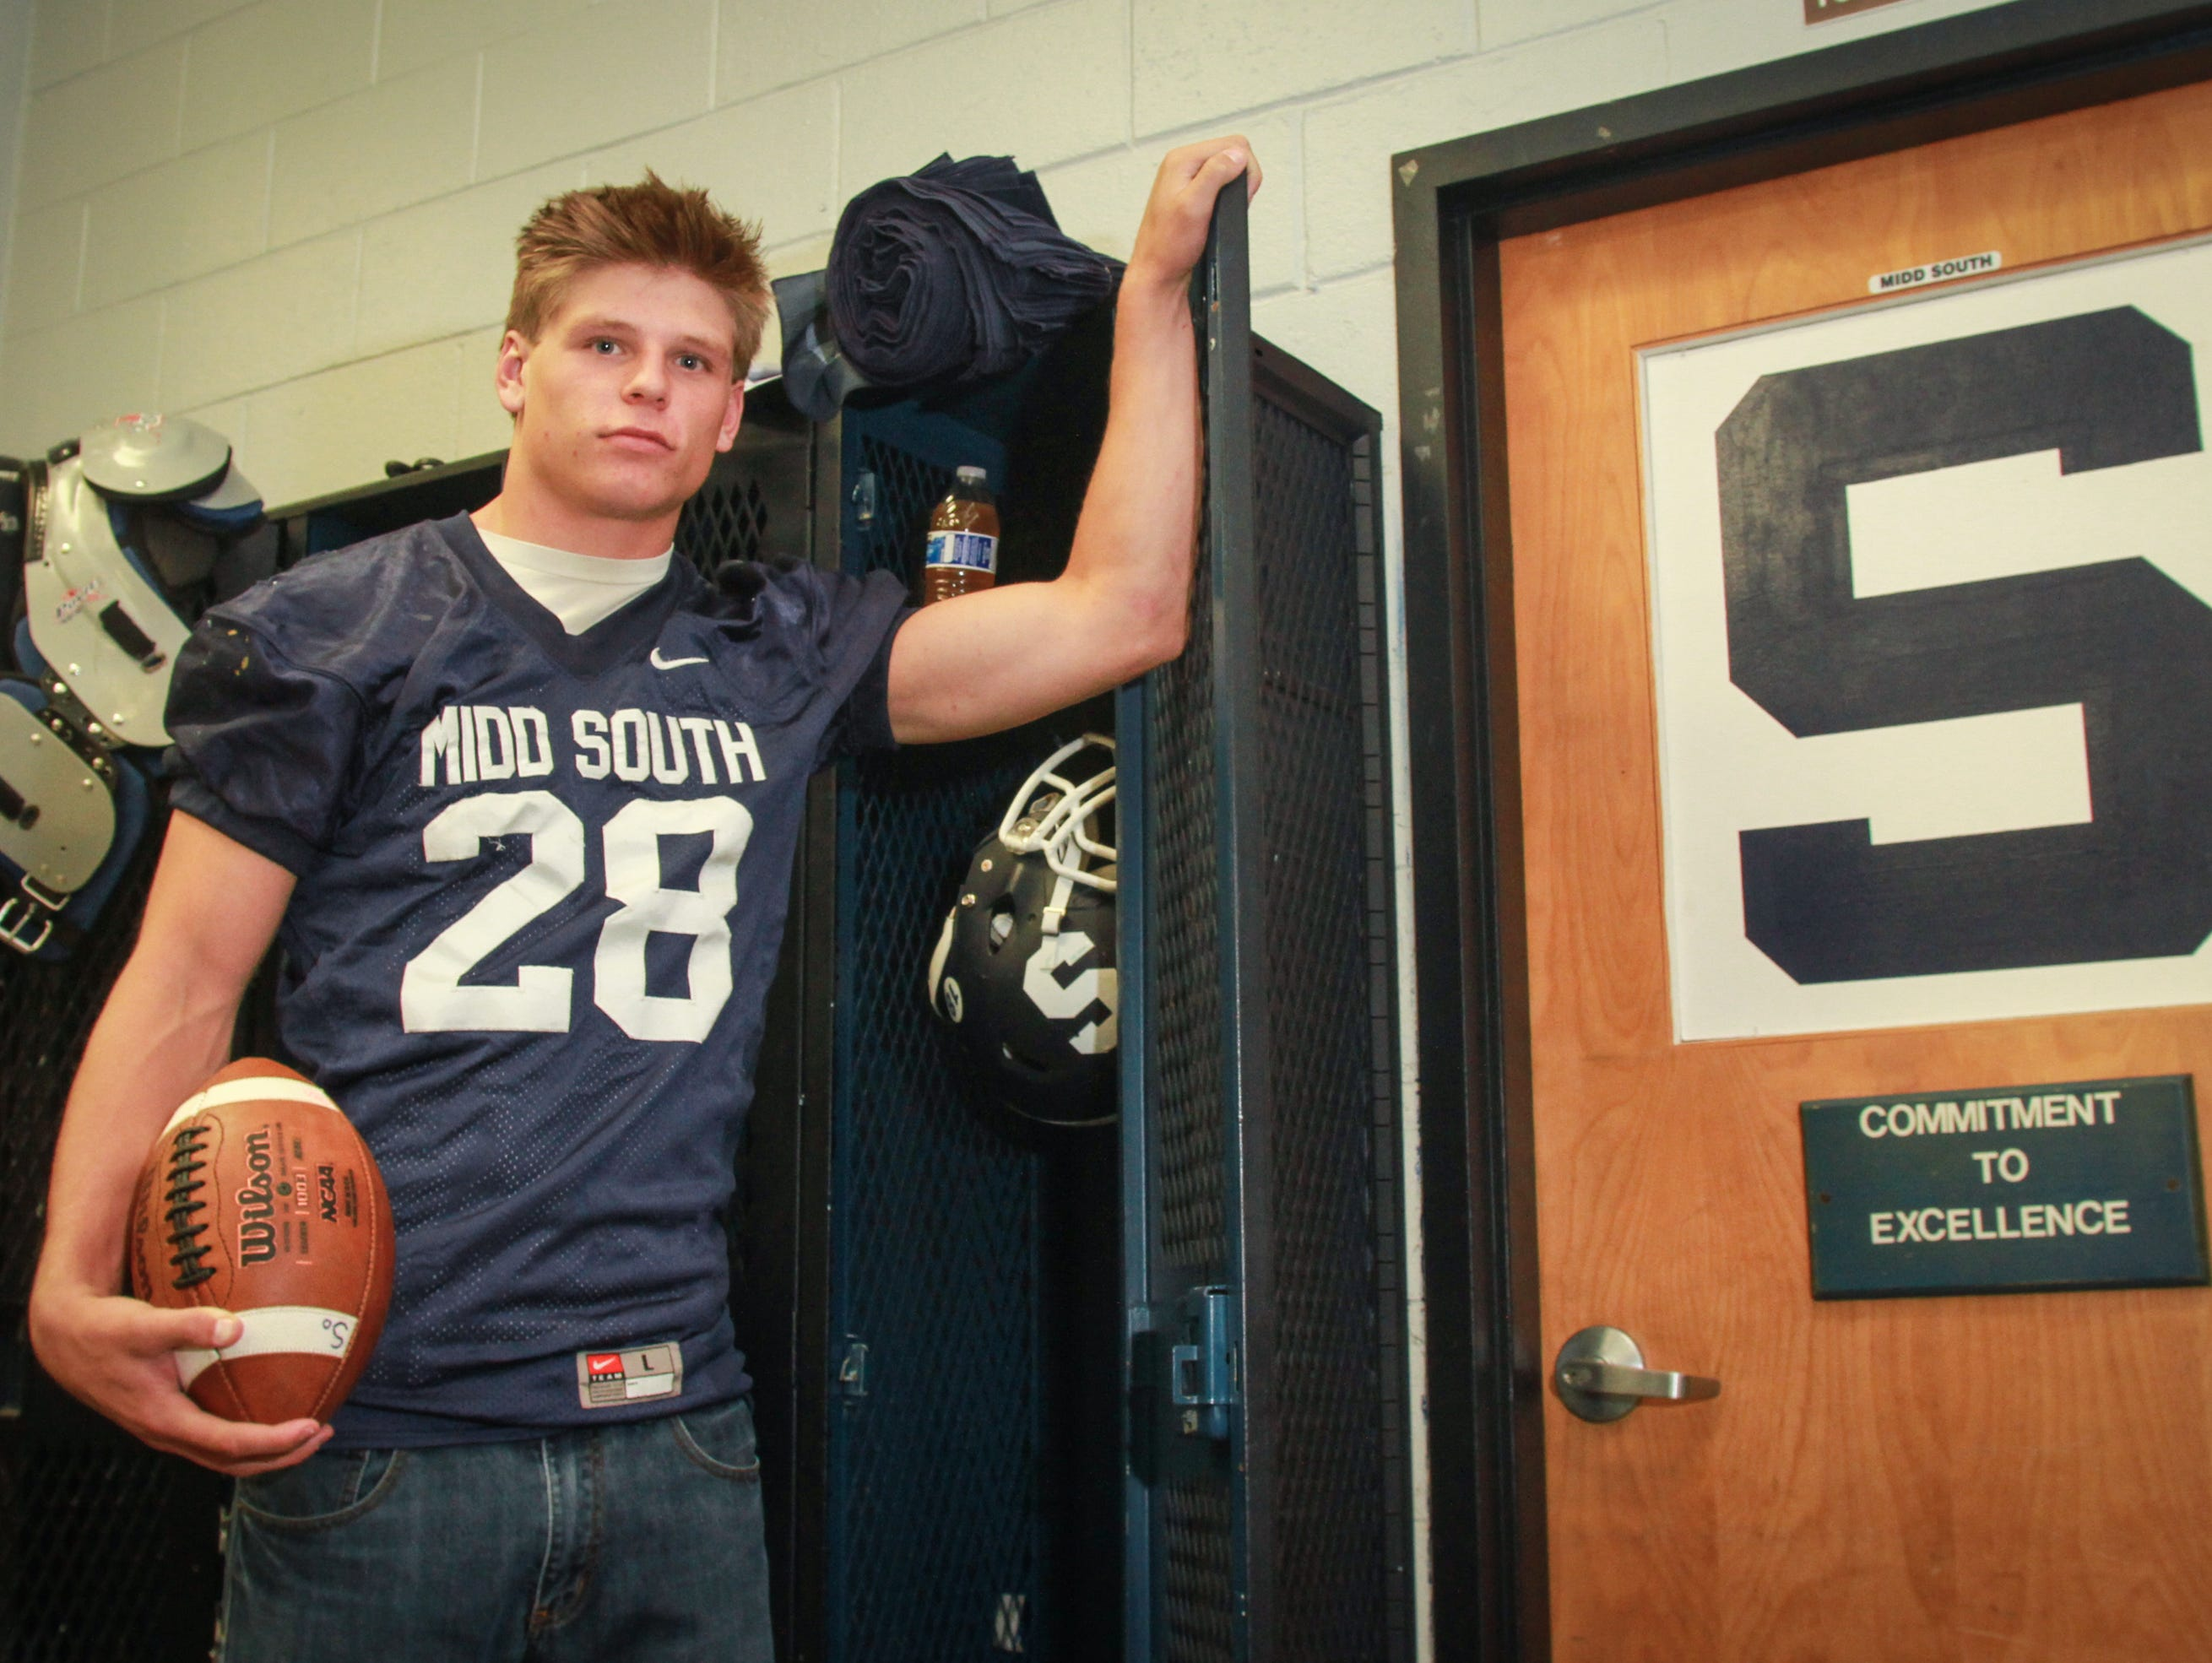 Middletown South junior linebacker/running back James McCarthy will be a key player for the Eagles Saturday at Freehold as they try to clinch a tie for the Shore Conference Class A North championship.